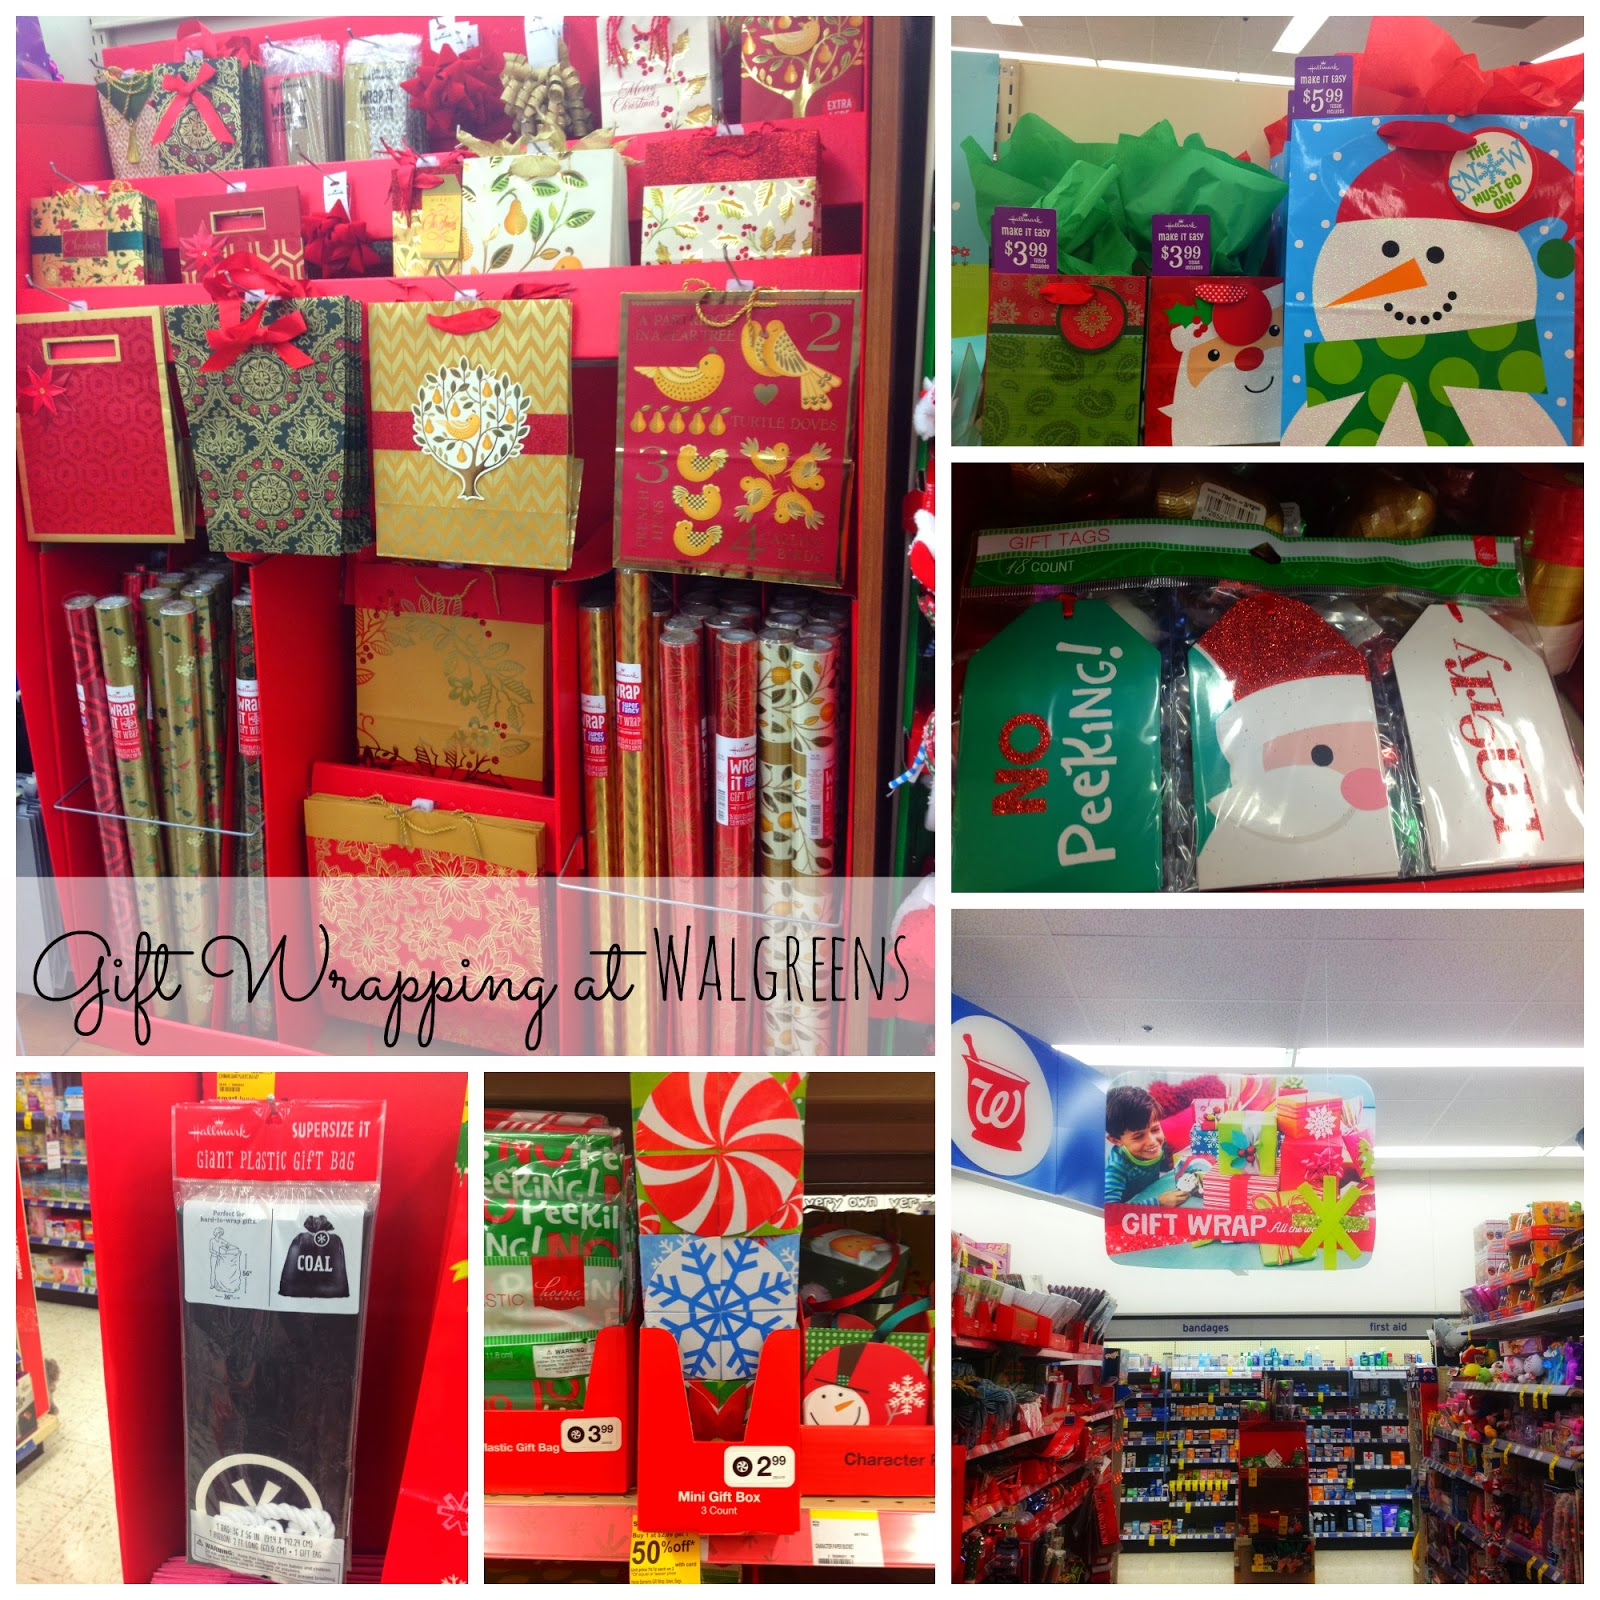 GiftWrap#HappyAlltheWay#cbias#shop.jpg  sc 1 st  MamaChallenge.com & Give Gifts Theyu0027ll Love with Help from Walgreens Holiday Gift Guide ...